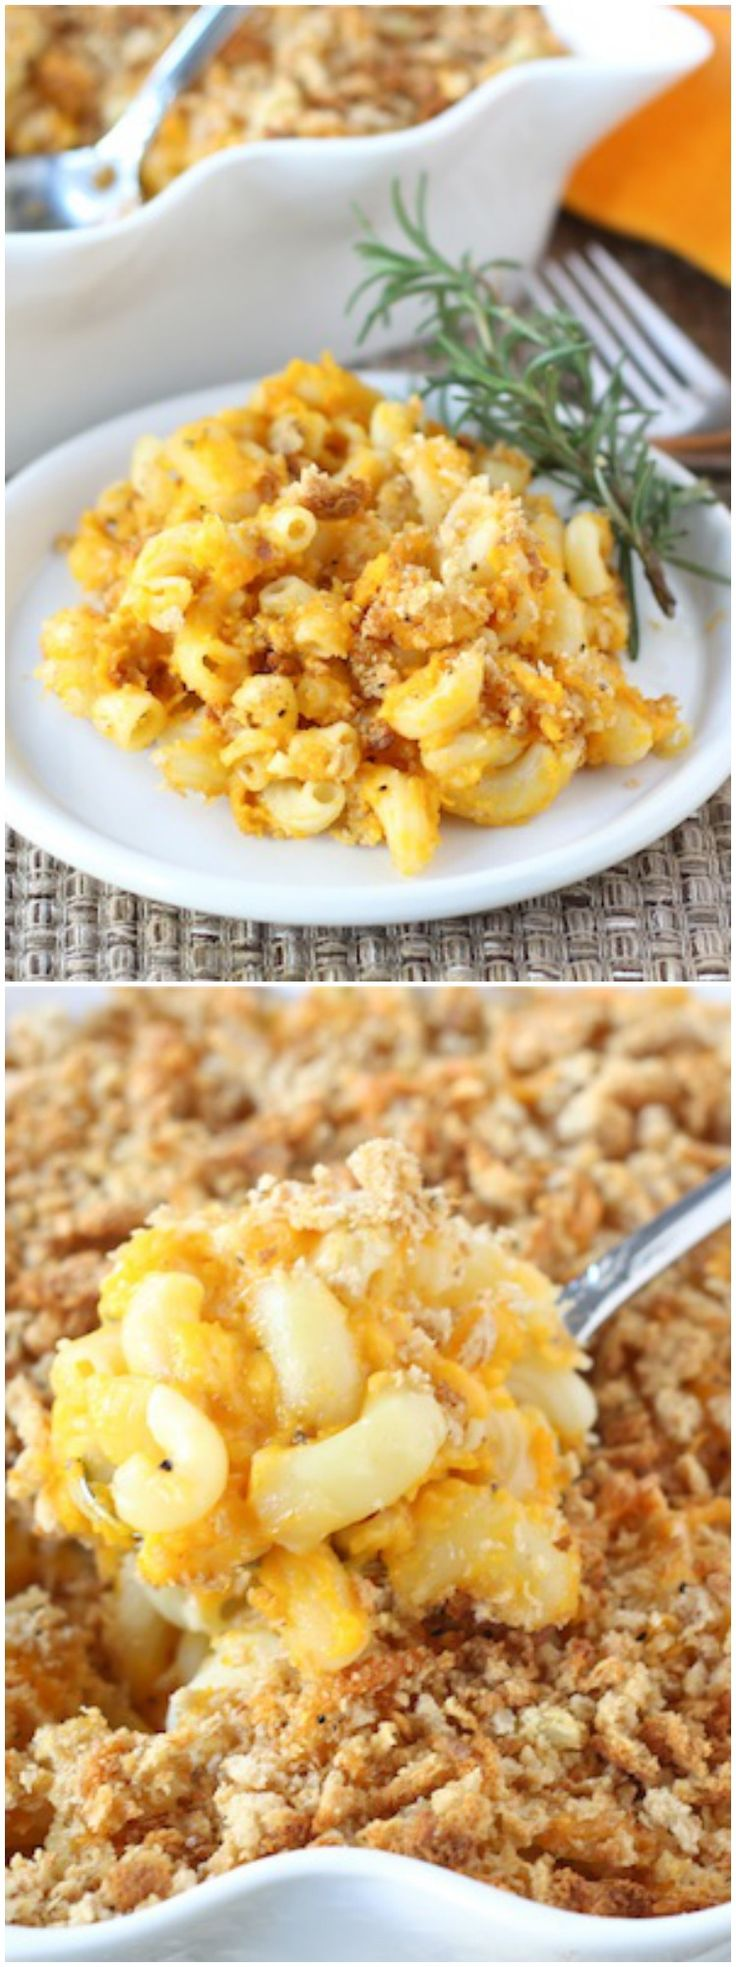 Butternut Squash Mac and Cheese Recipe on twopeasandtheirpod.com Love this healthy mac and cheese! It's perfect for fall!